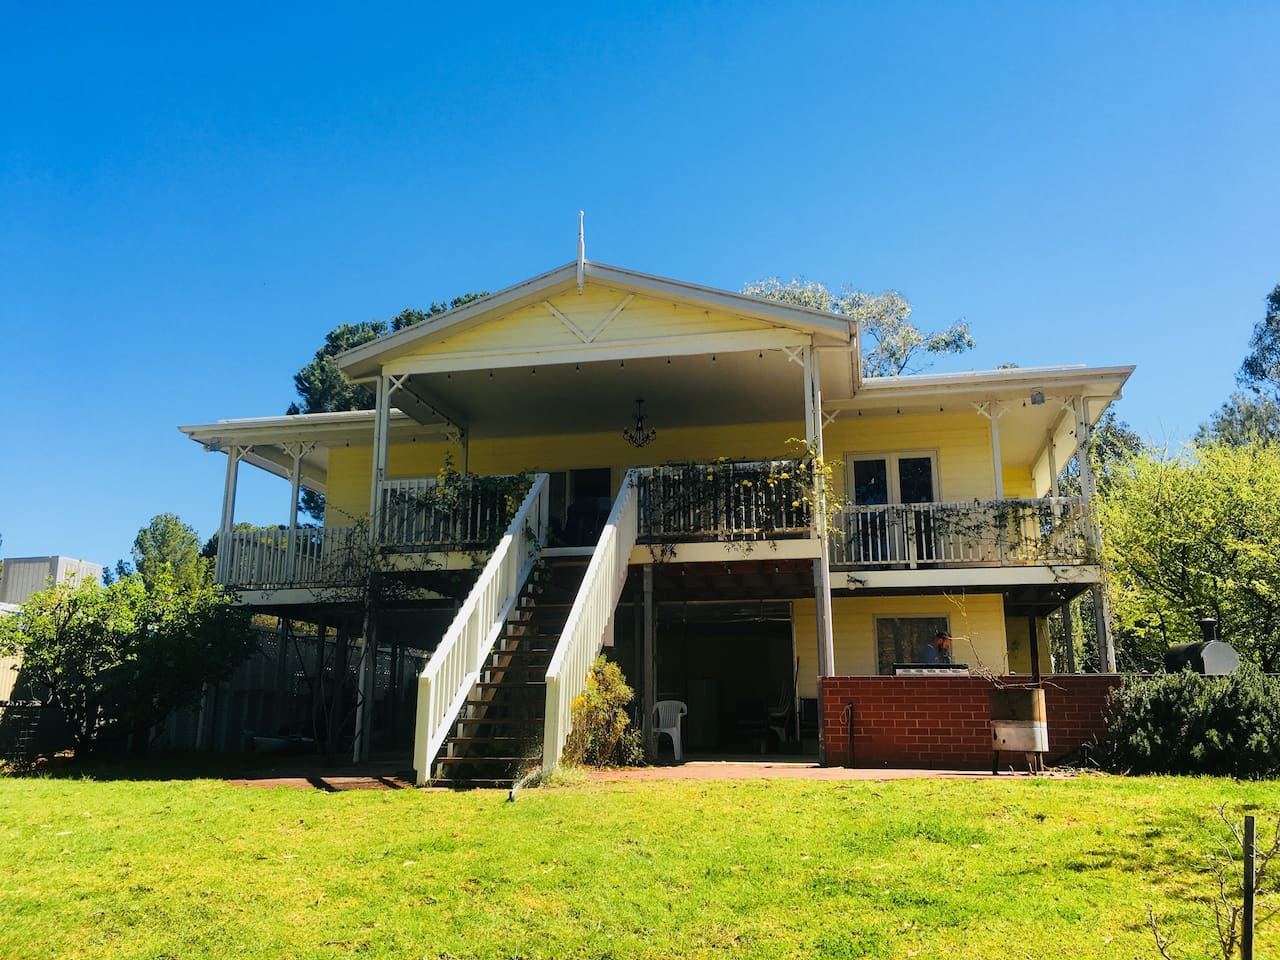 Murrundi Cliffs Walker Flat Riverfront Holiday Home with views of the river and cliffs beyond.